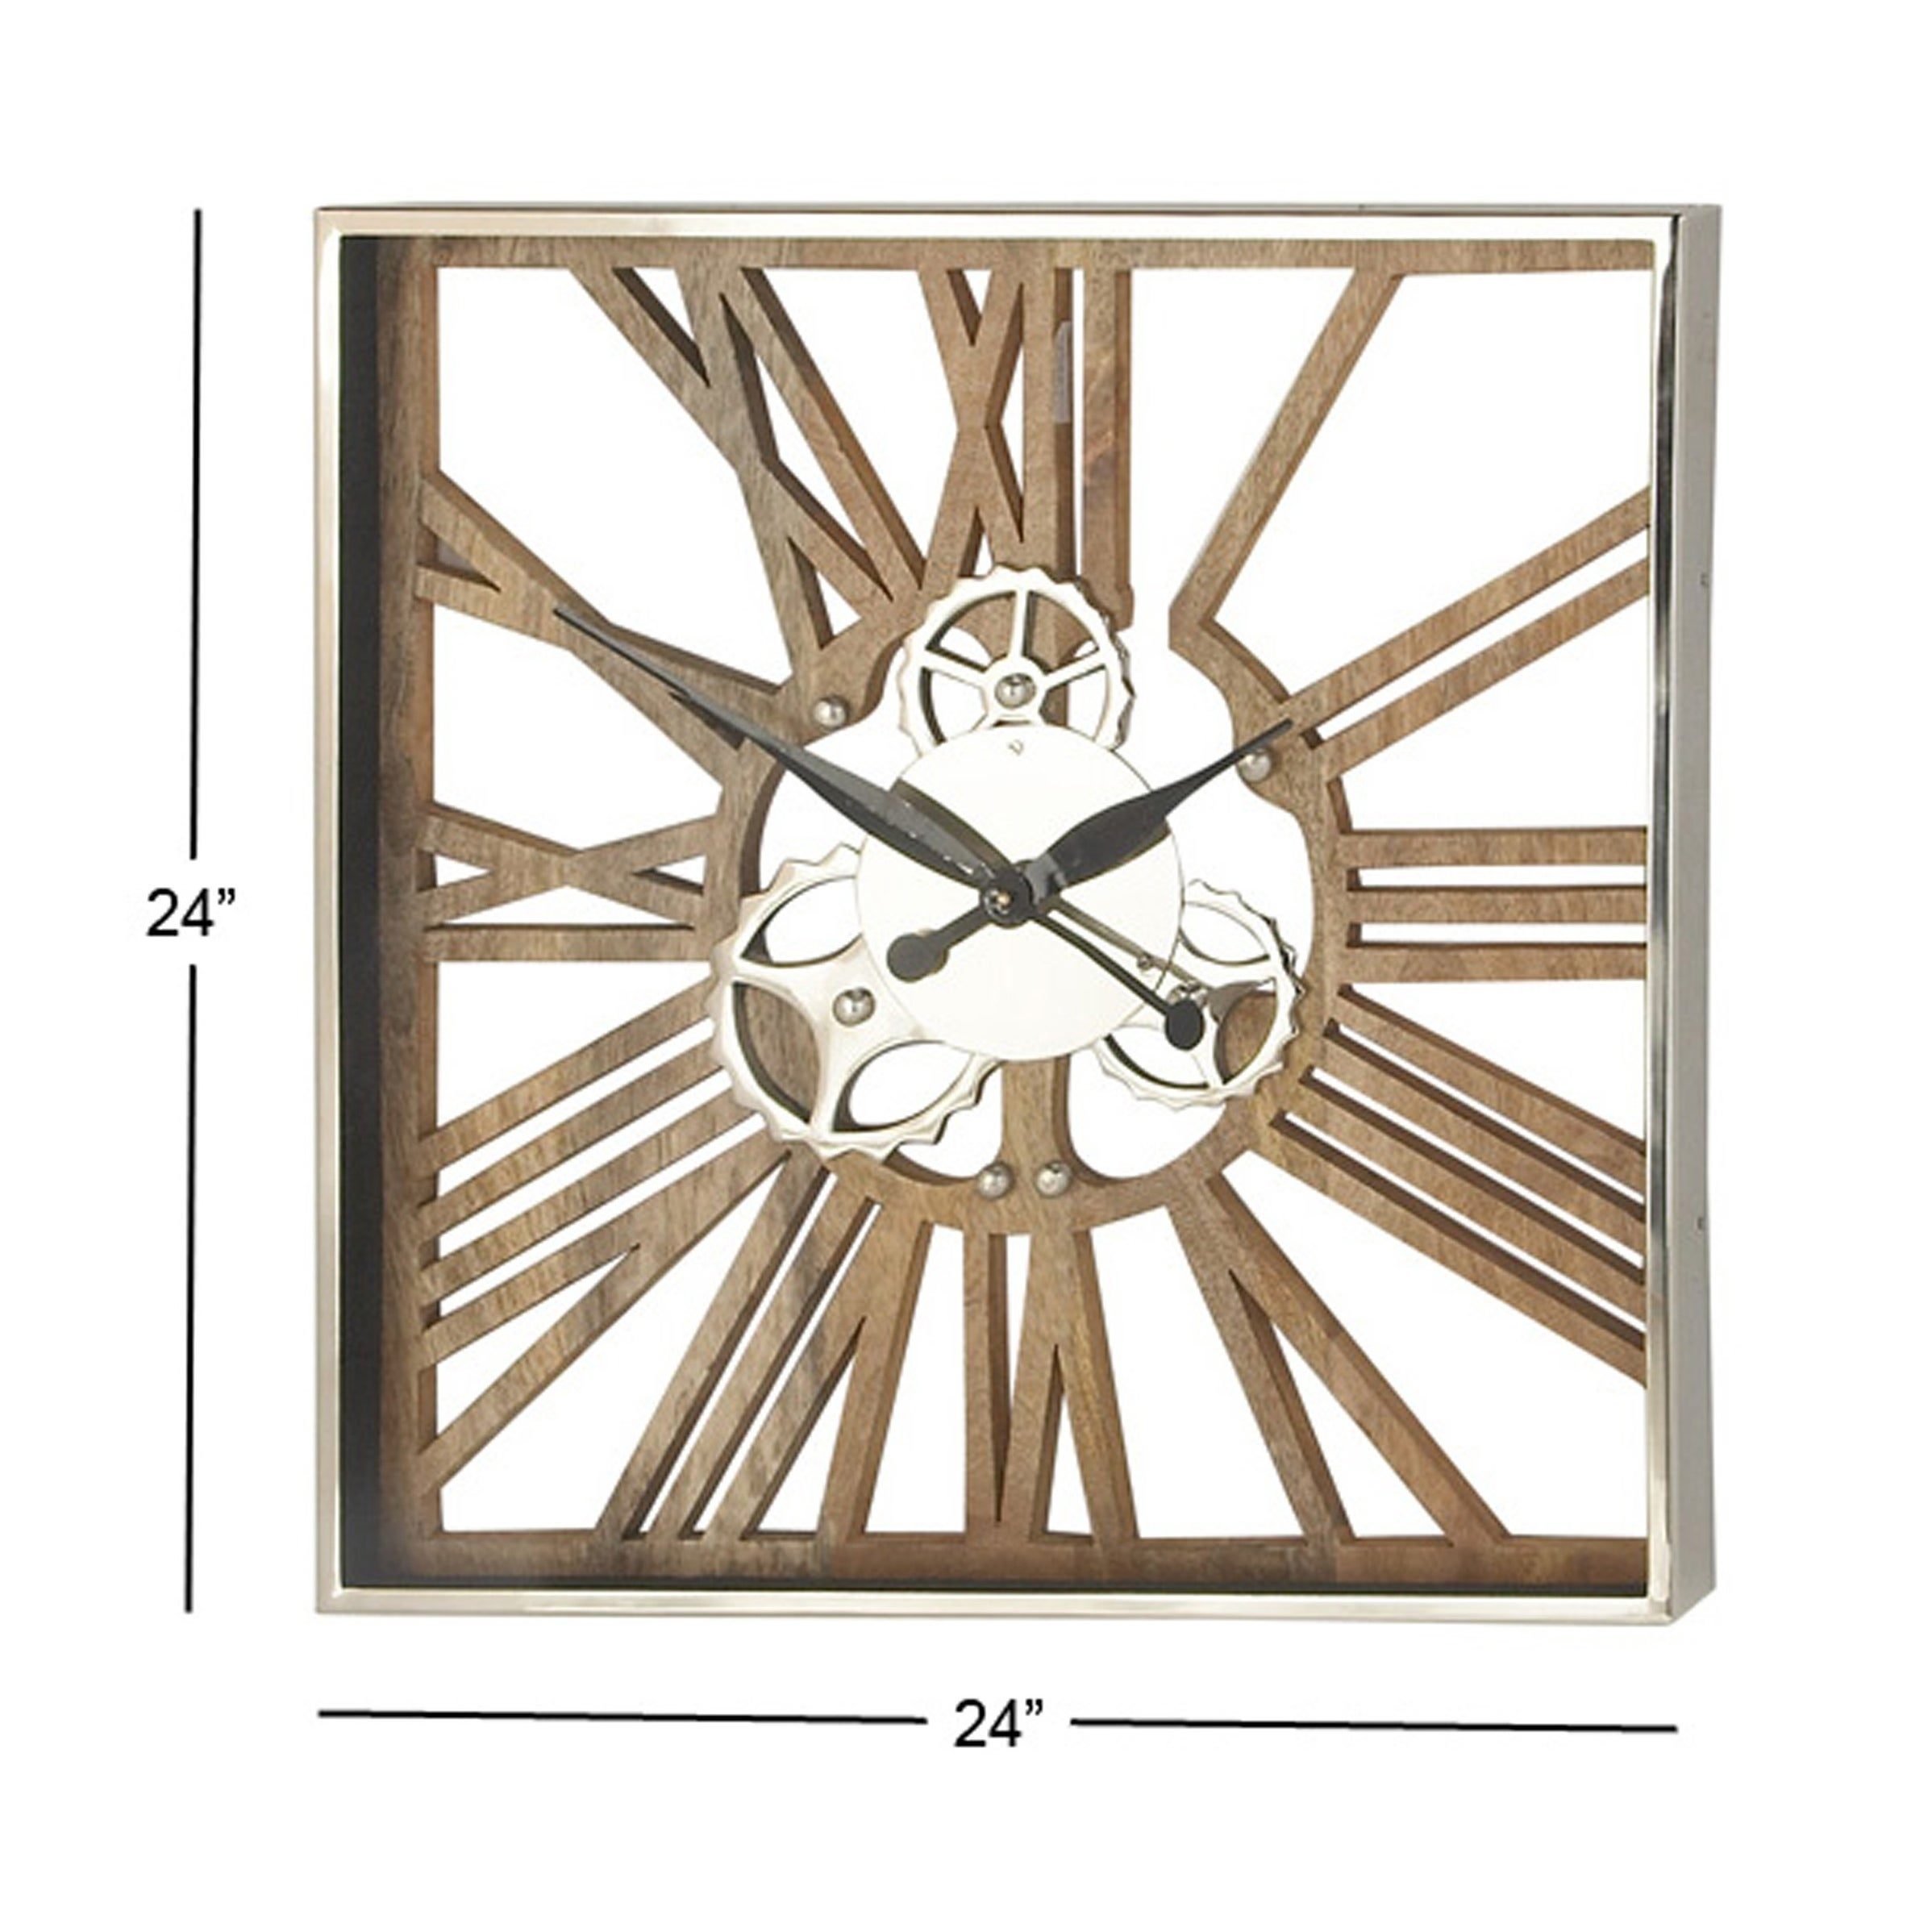 Shop Industrial 24 X 24 Inch Square Gear Wall Clock On Sale Free